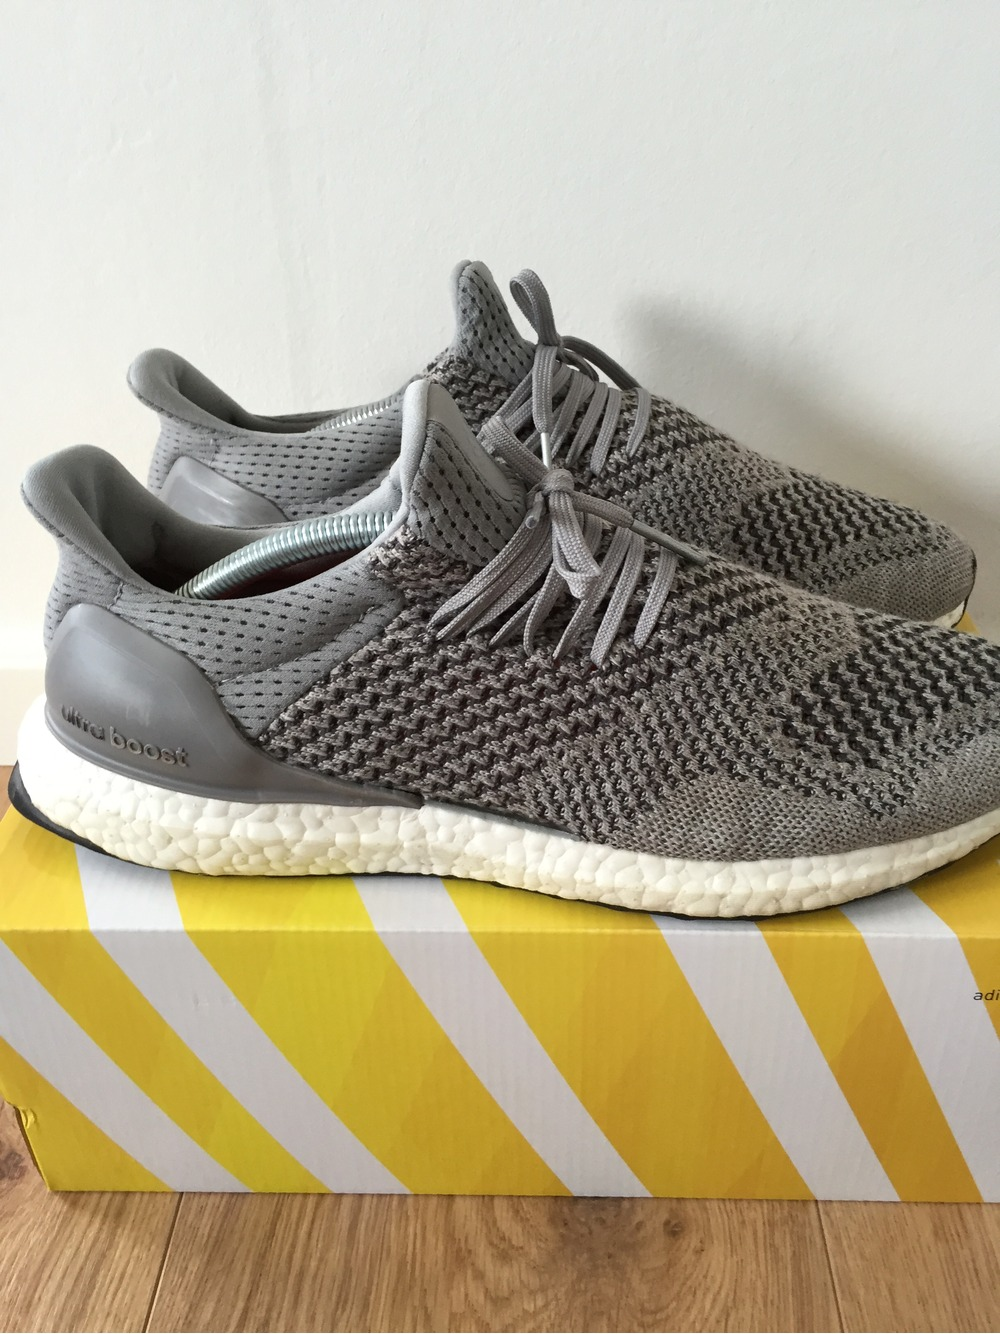 a79911547 adidas ultra boost uncaged parley review adidas nmd womens grey cheap